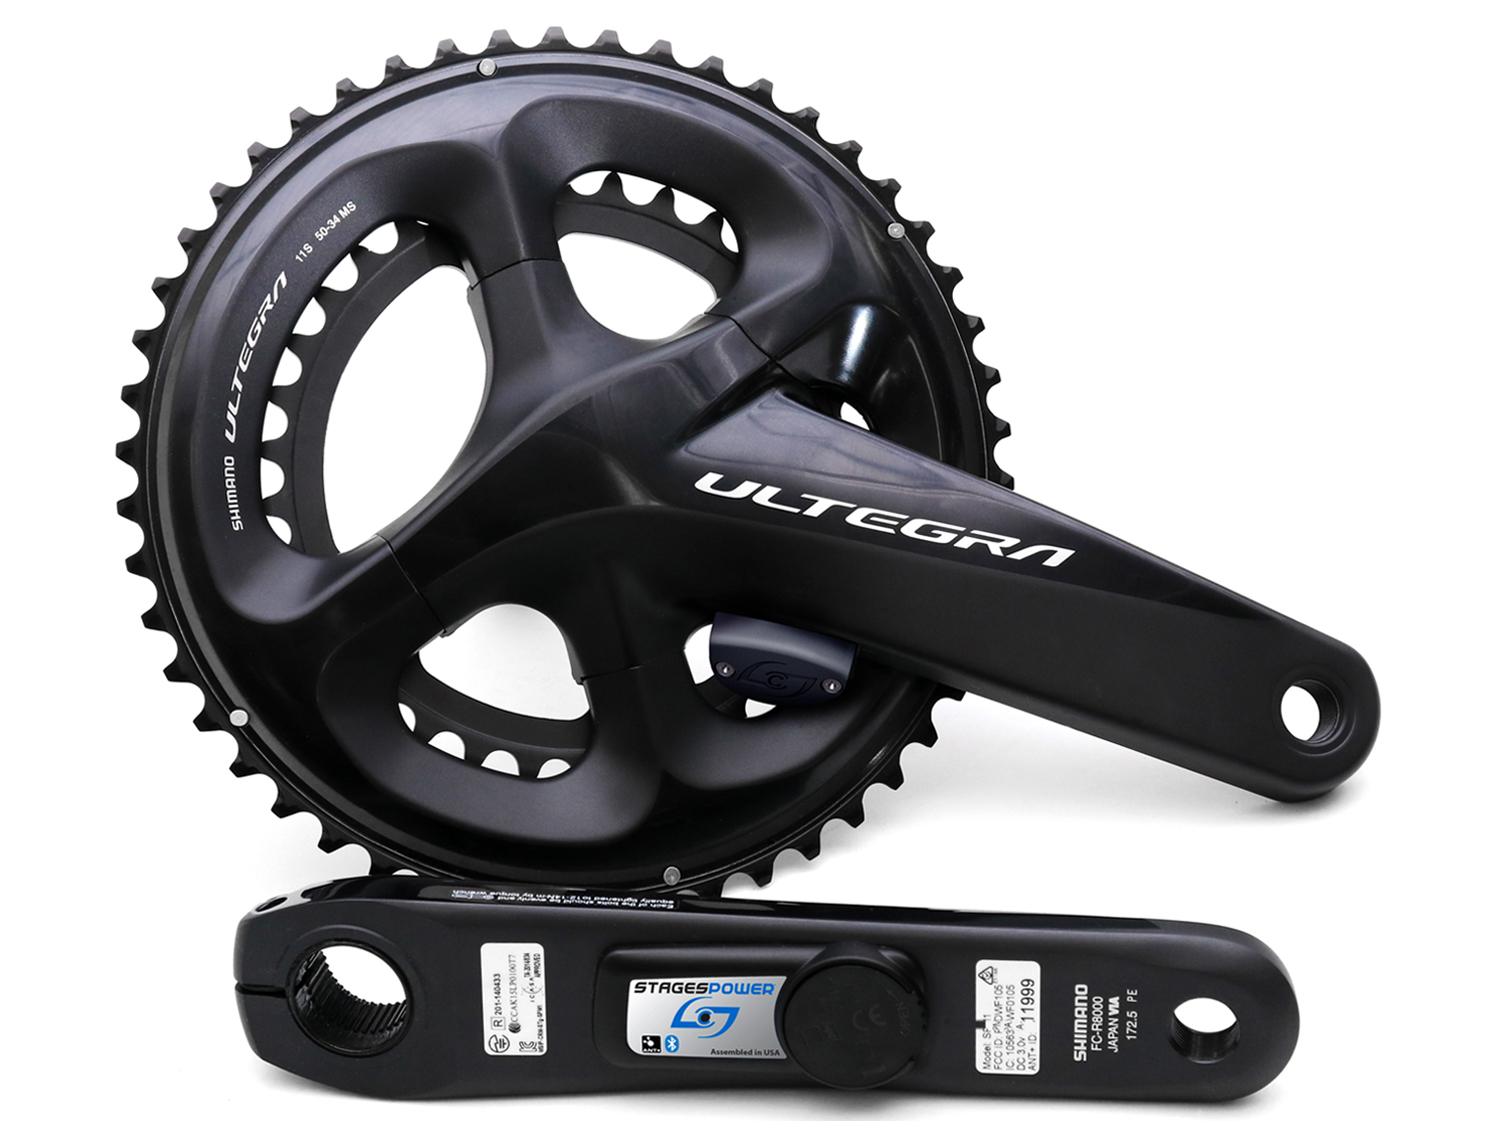 0692b6649c3 Stages Cycling Store | Stages Power L / LR / R - Shimano Ultegra R8000 |  buy online